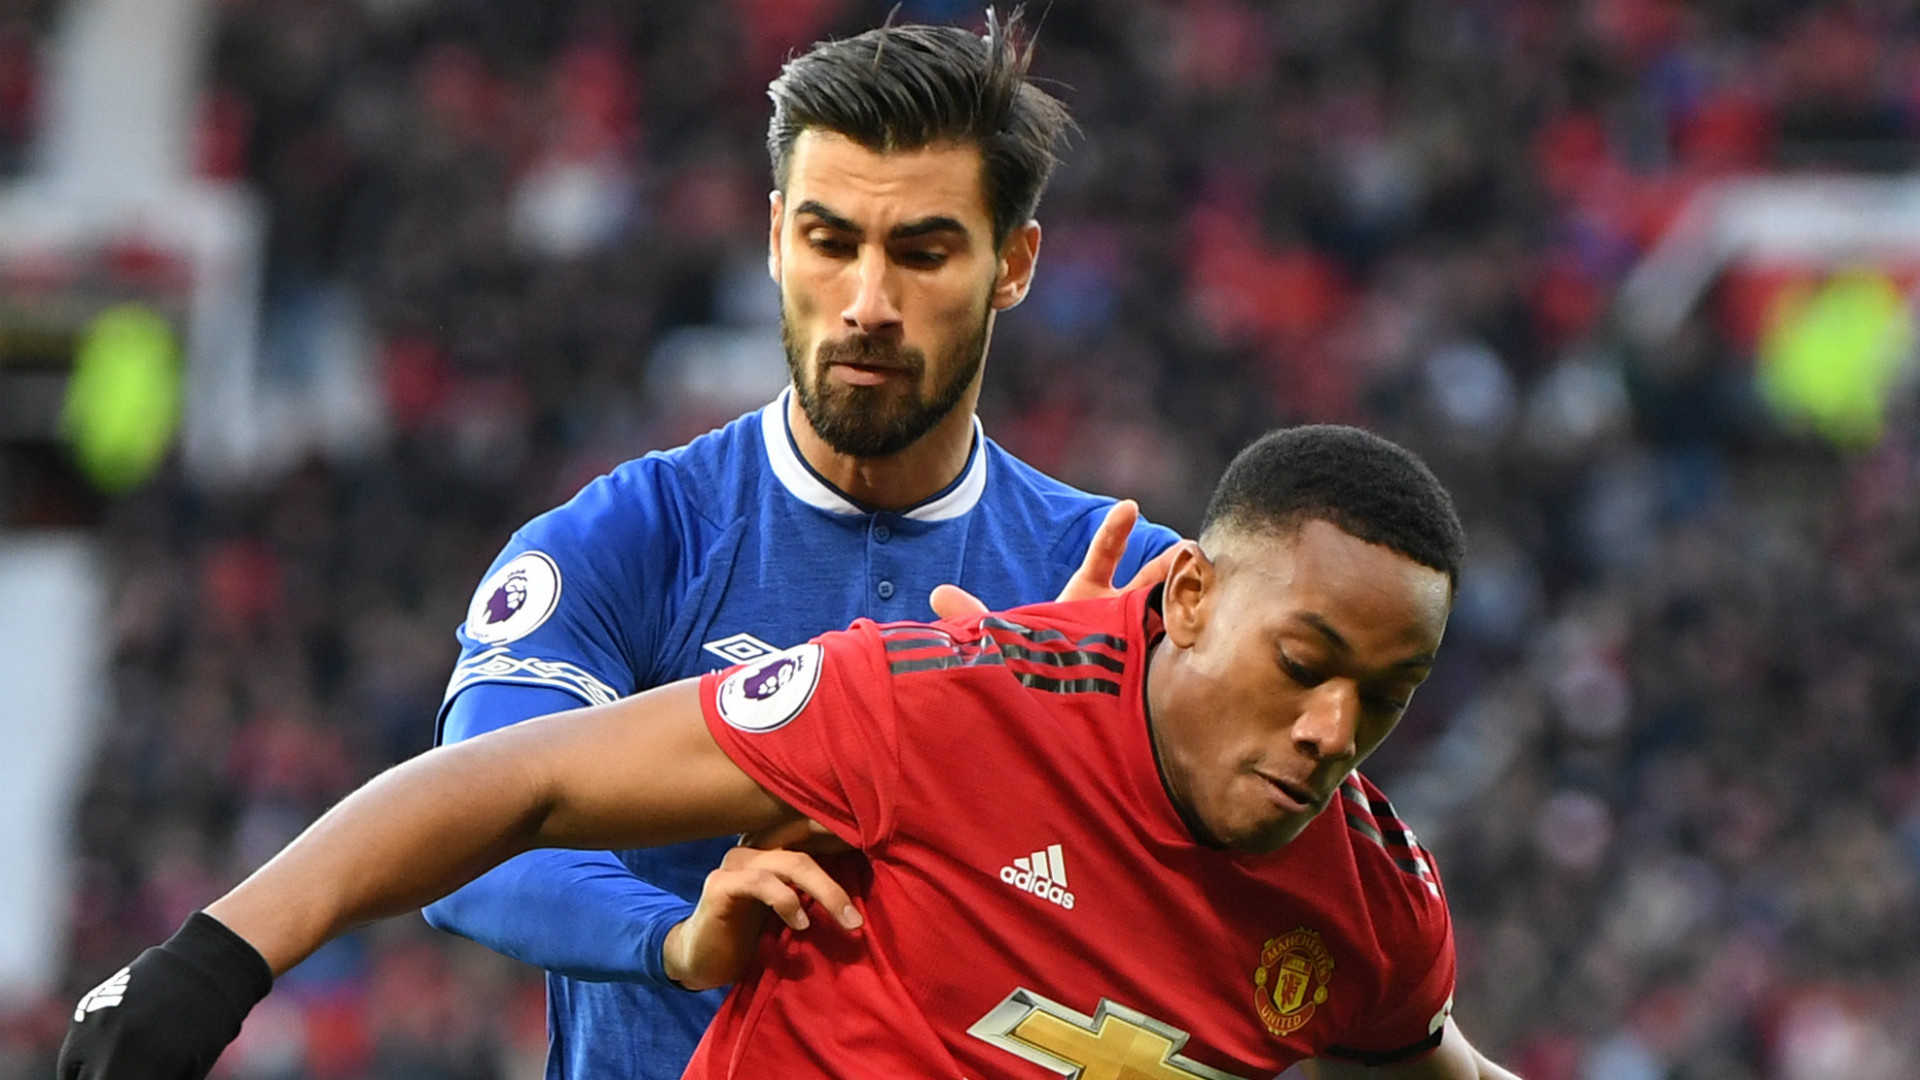 Anthony Martial Andre Gomes Manchester United Everton 2018-19